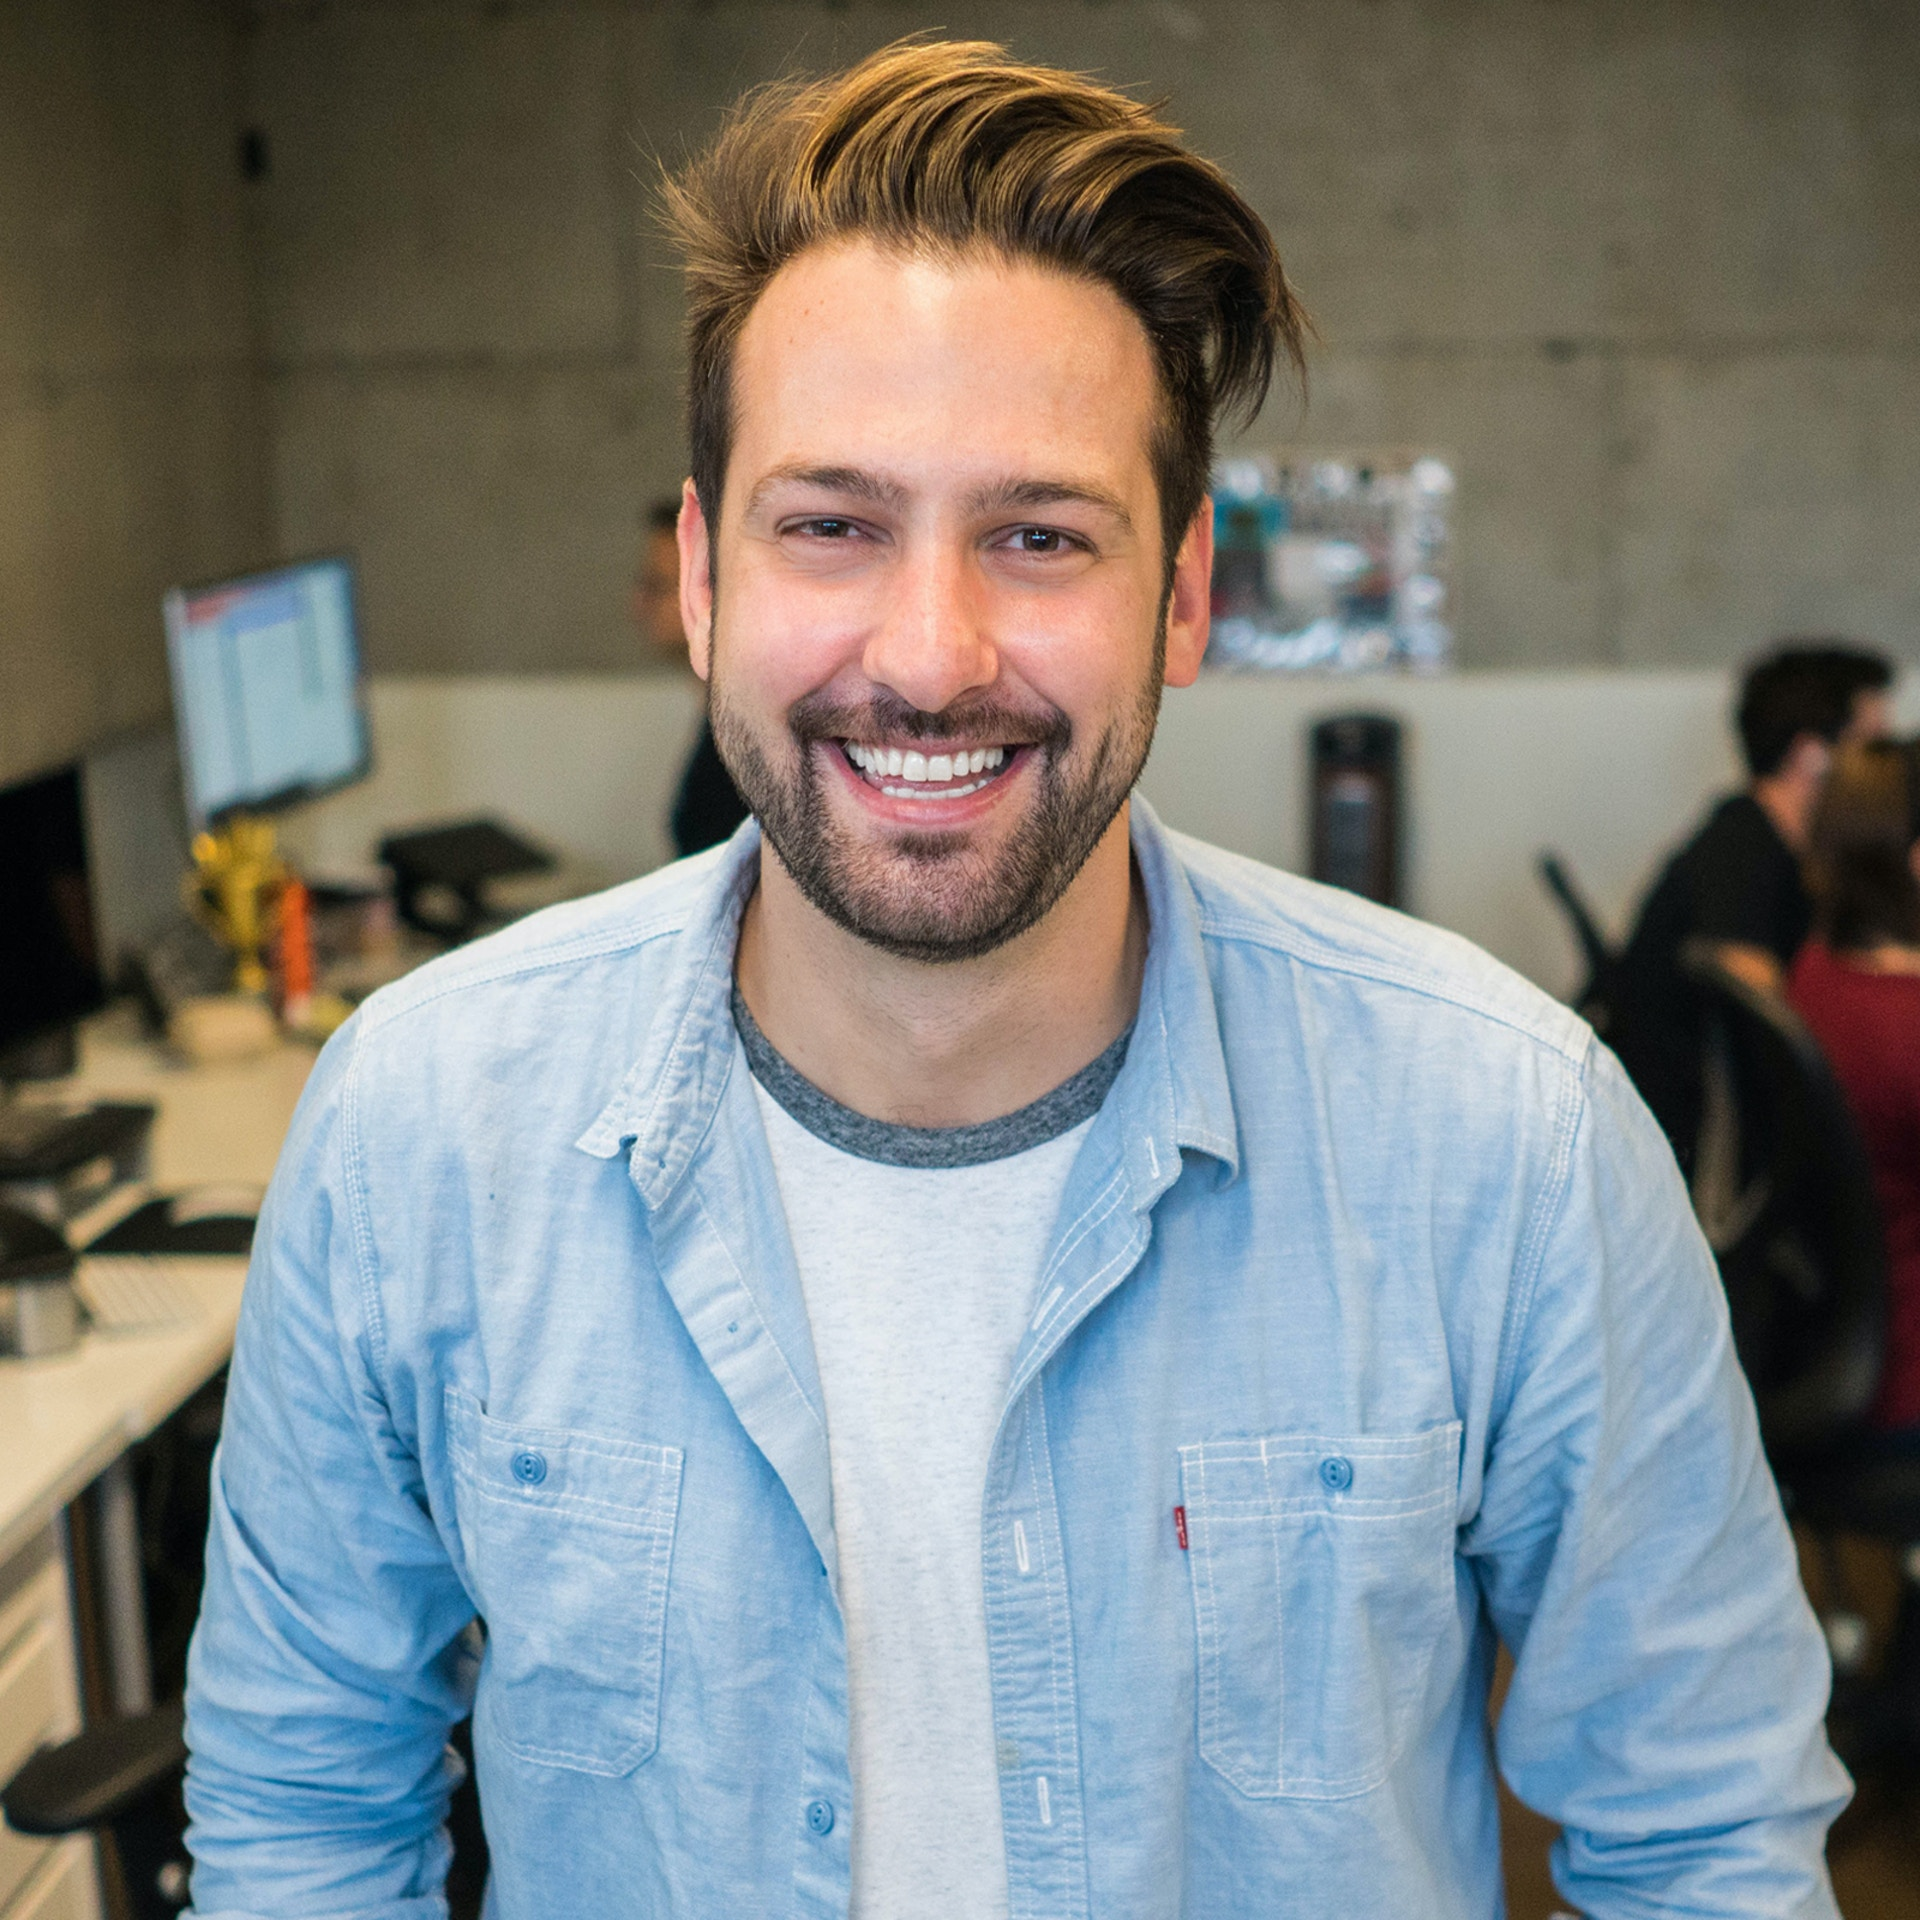 a smiling man standing in an office space